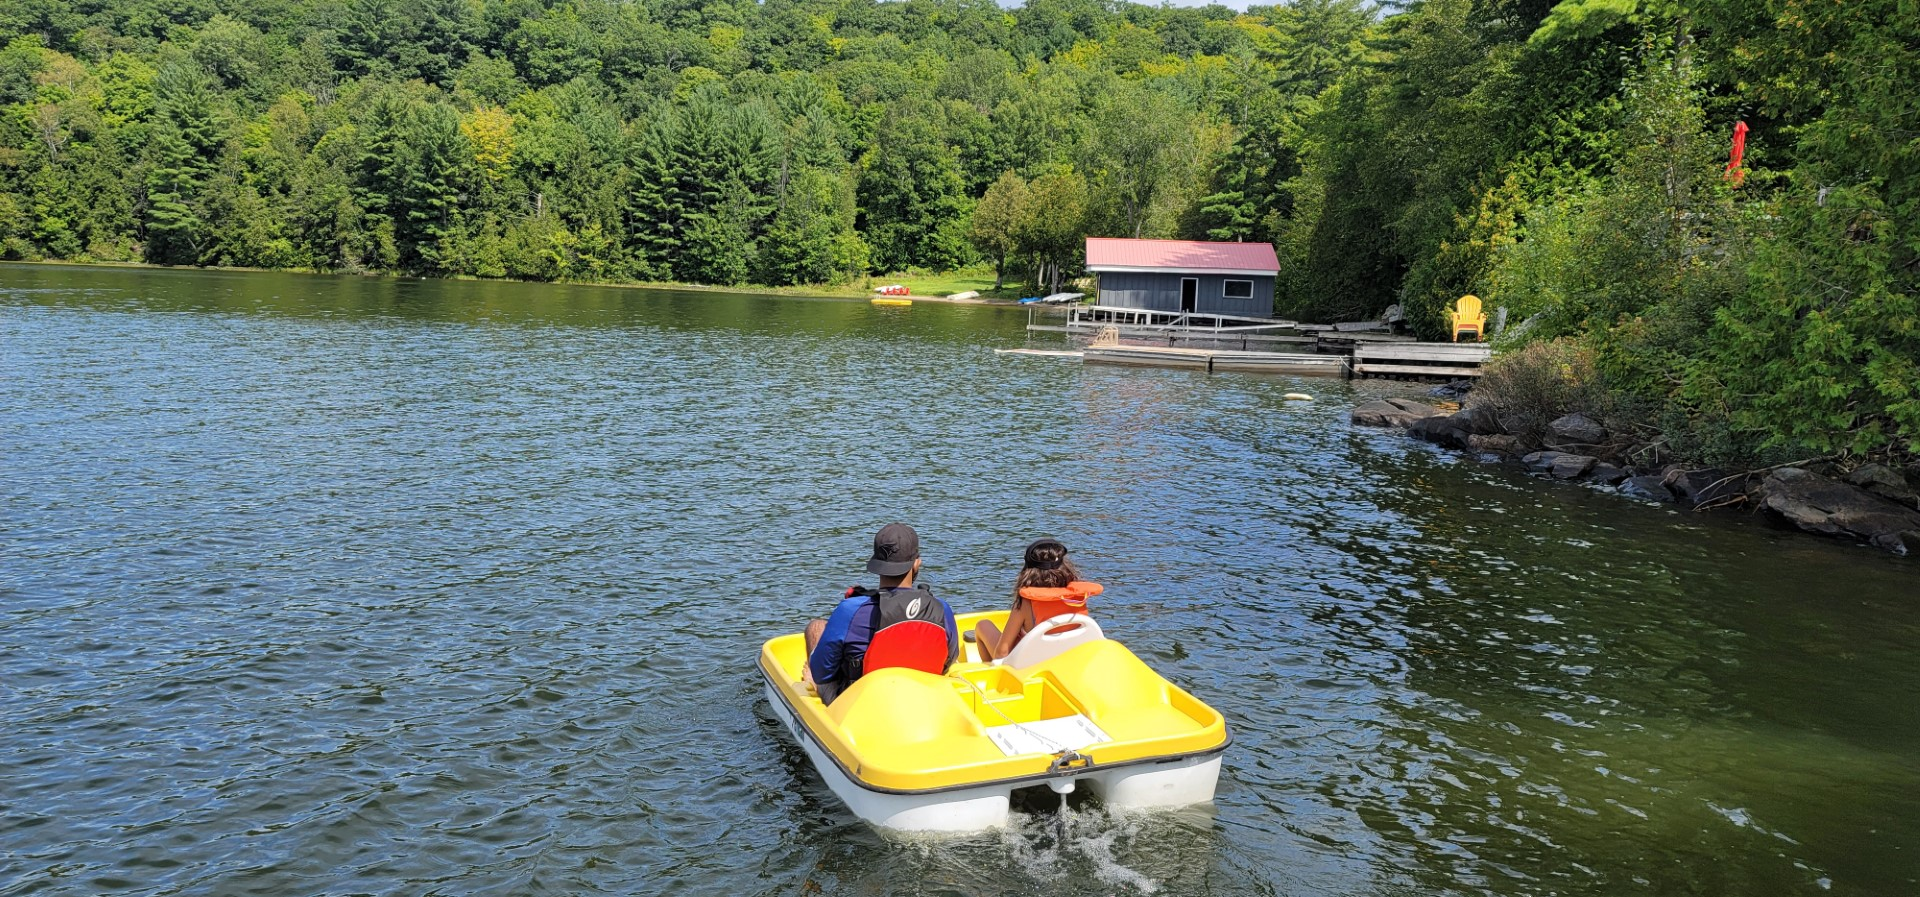 two people on yellow pedal boat